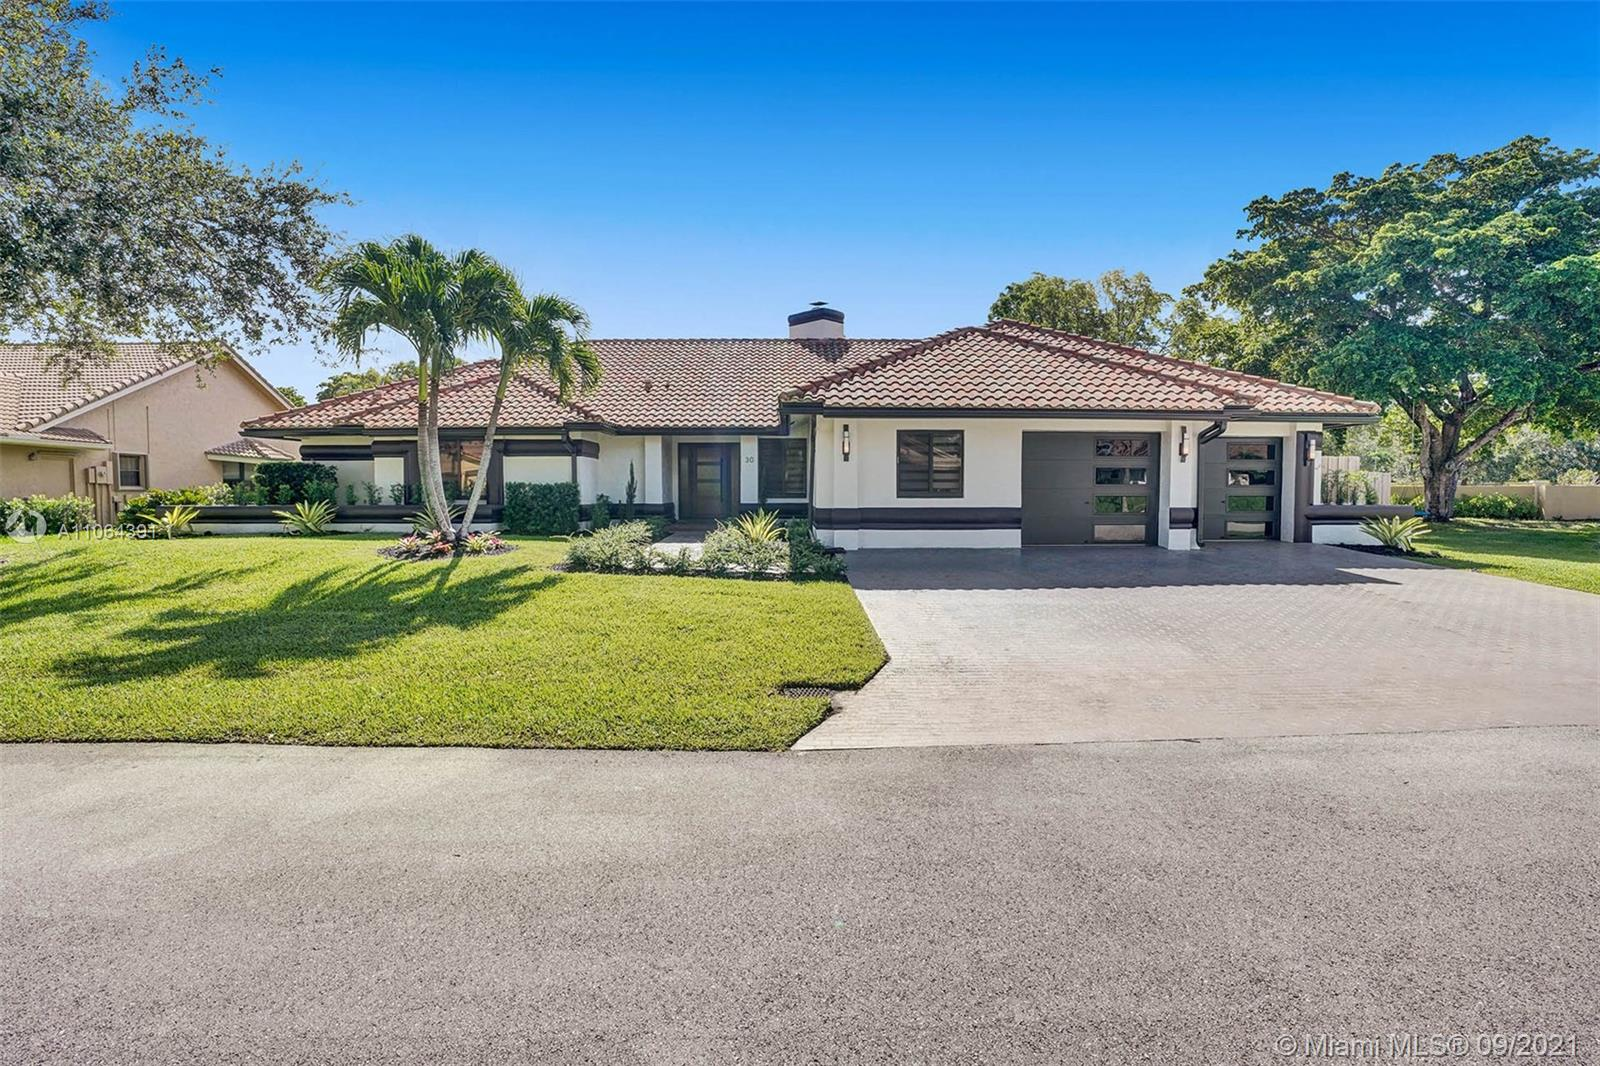 Photo of 30 NW 128th Ave, Home